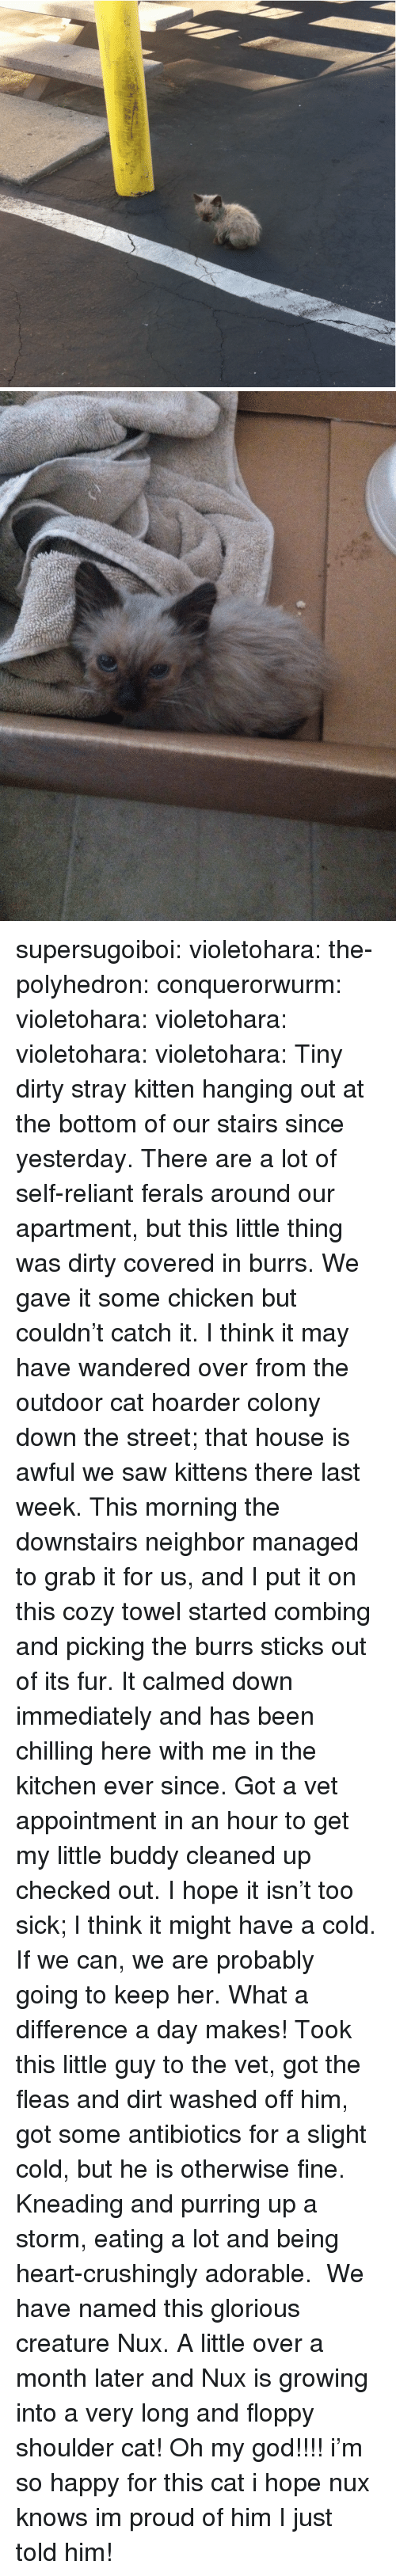 Colony: supersugoiboi:  violetohara:  the-polyhedron:  conquerorwurm:  violetohara:   violetohara:   violetohara:   violetohara:   Tiny dirty stray kitten hanging out at the bottom of our stairs since yesterday. There are a lot of self-reliant ferals around our apartment, but this little thing was dirty  covered in burrs. We gave it some chicken but couldn't catch it. I think it may have wandered over from the outdoor cat hoarder colony down the street; that house is awful  we saw kittens there last week.  This morning the downstairs neighbor managed to grab it for us, and I put it on this cozy towel  started combing and picking the burrs  sticks out of its fur. It calmed down immediately and has been chilling here with me in the kitchen ever since. Got a vet appointment in an hour to get my little buddy cleaned up  checked out. I hope it isn't too sick; I think it might have a cold.  If we can, we are probably going to keep her.   What a difference a day makes! Took this little guy to the vet, got the fleas and dirt washed off him, got some antibiotics for a slight cold, but he is otherwise fine. Kneading and purring up a storm, eating a lot and being heart-crushingly adorable.   We have named this glorious creature Nux.   A little over a month later and Nux is growing into a very long and floppy shoulder cat!   Oh my god!!!!  i'm so happy for this cat i hope nux knows im proud of him  I just told him!